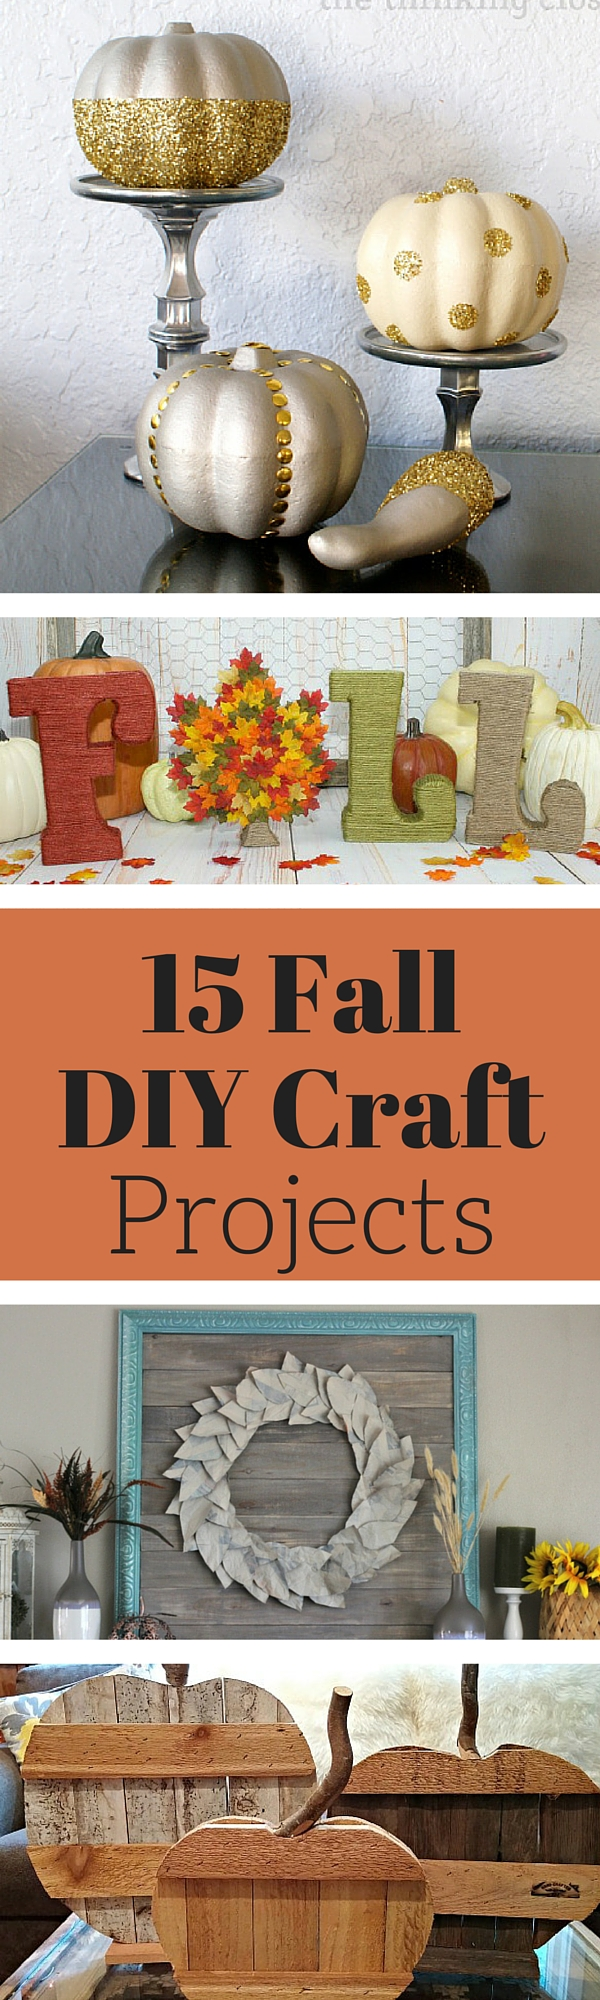 Fall crafts and diy projects weekend craft for Fall diy crafts pinterest